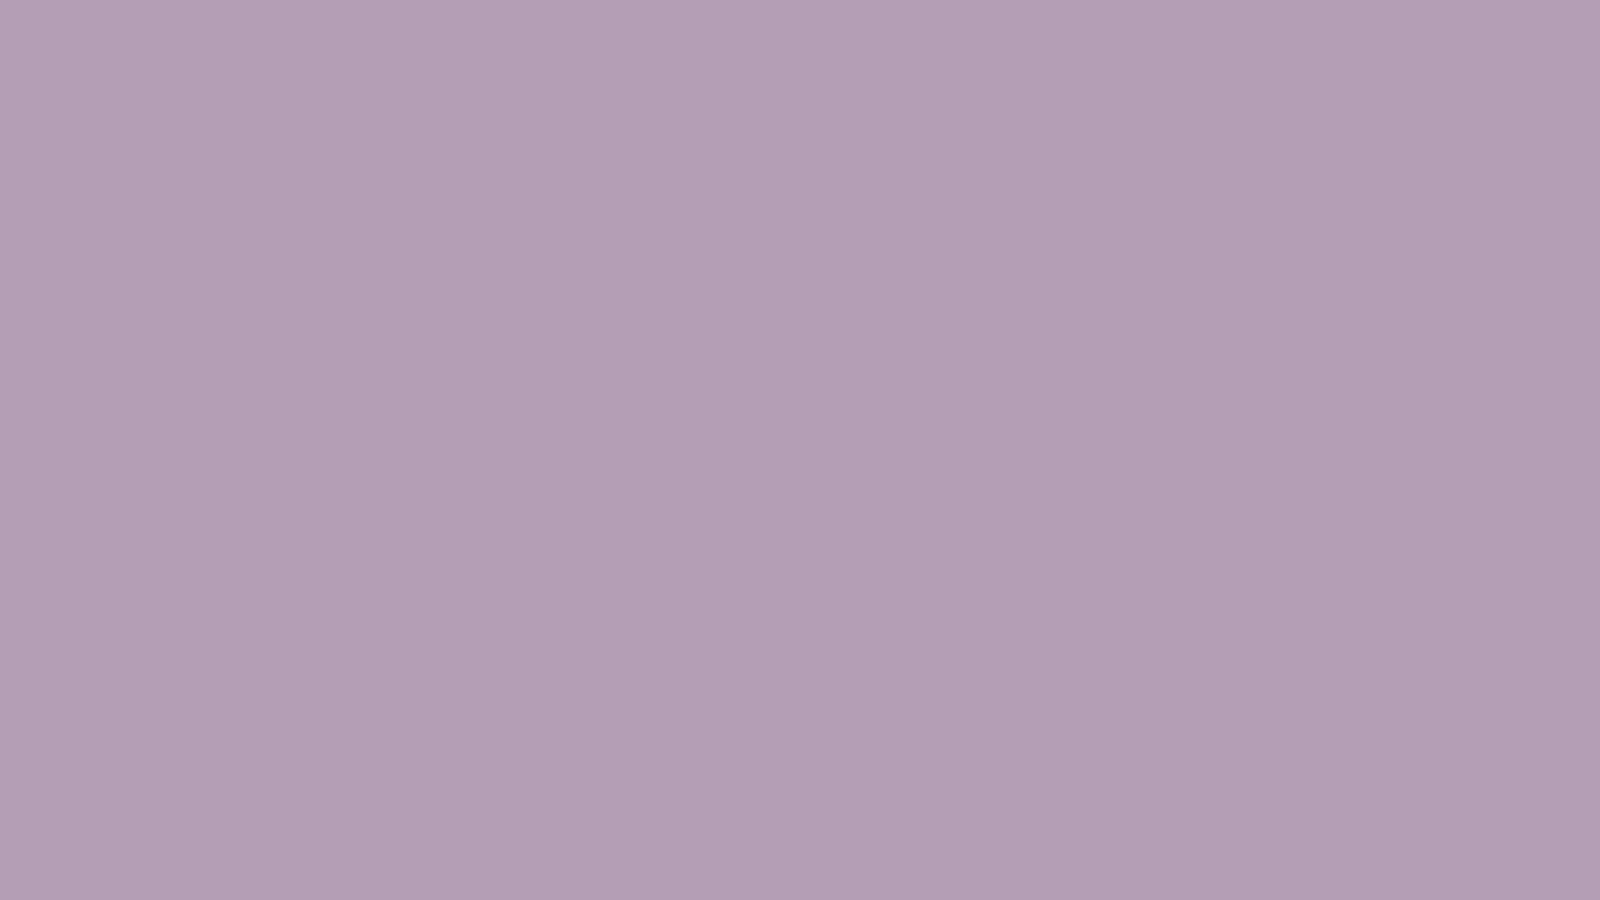 Privacy Policy >> 1600x900 Pastel Purple Solid Color Background